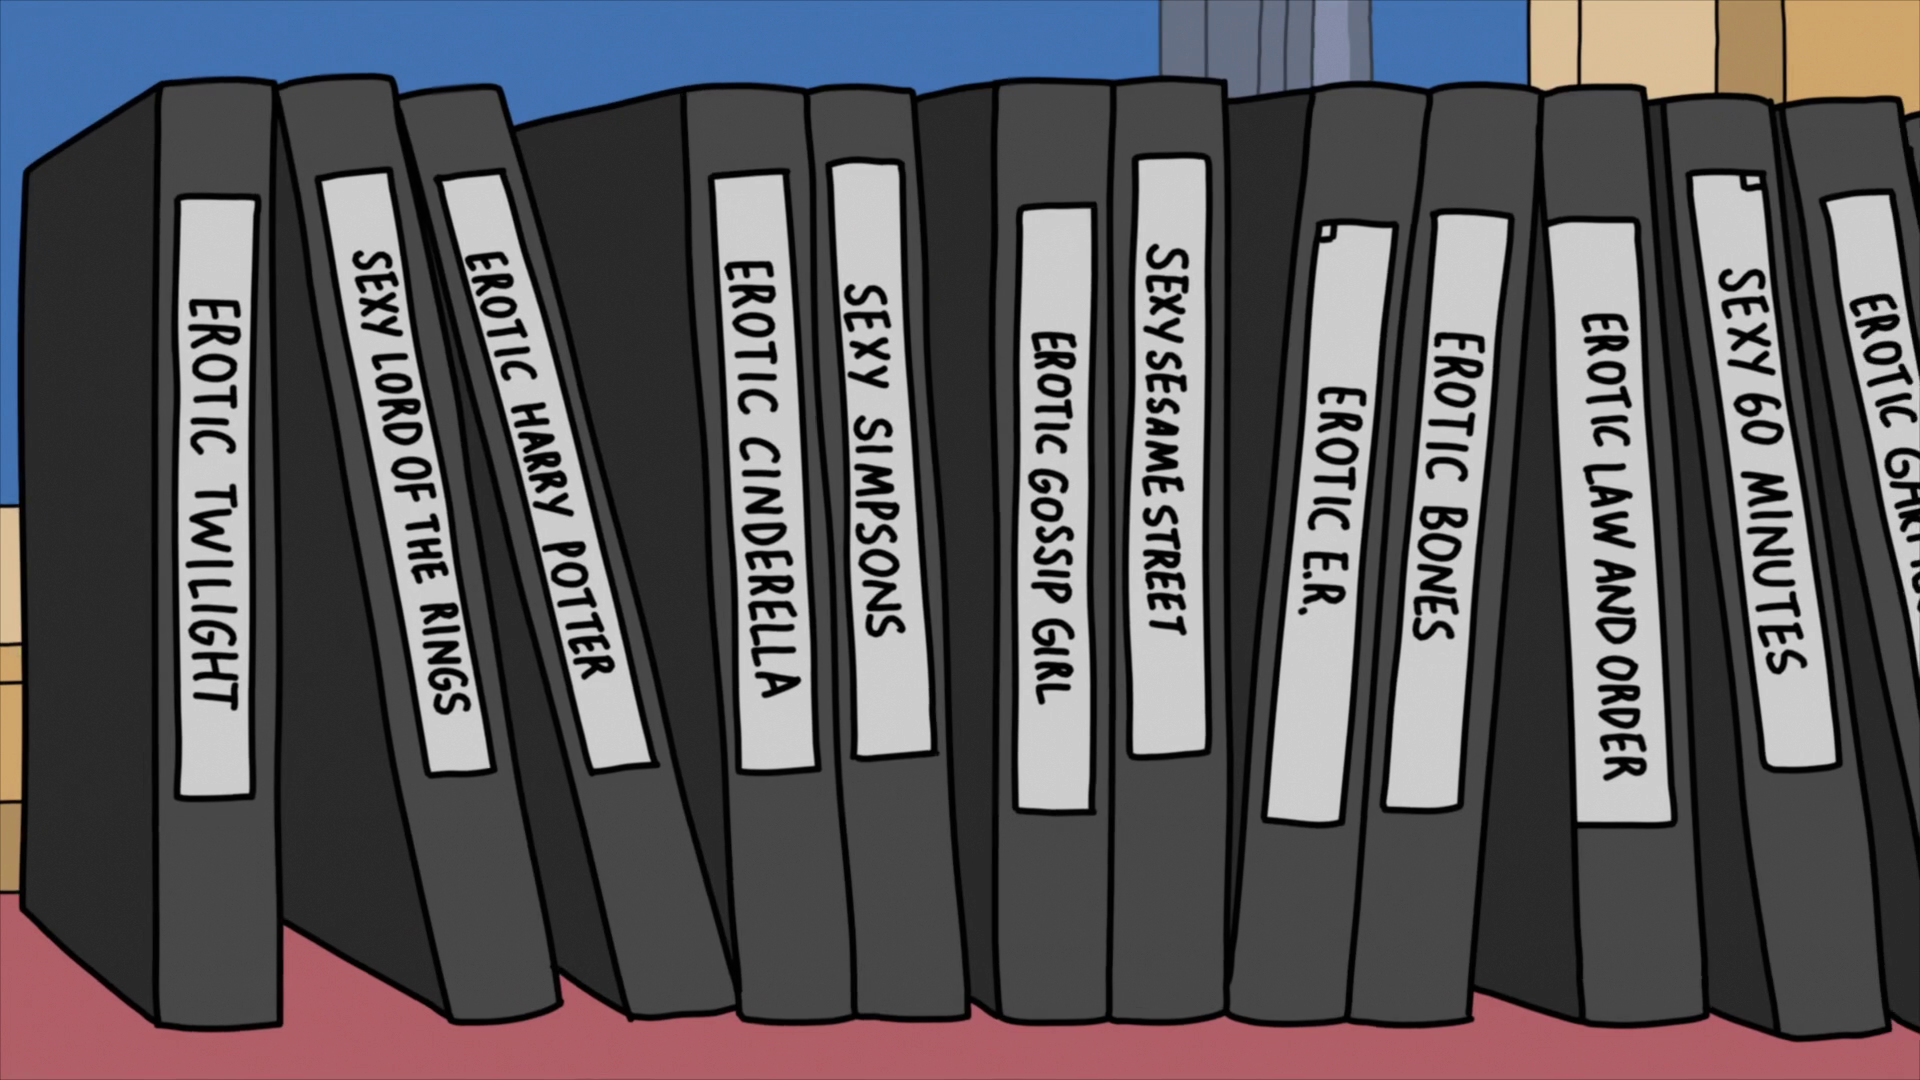 Simpsons Reference (Bob's Burgers).png